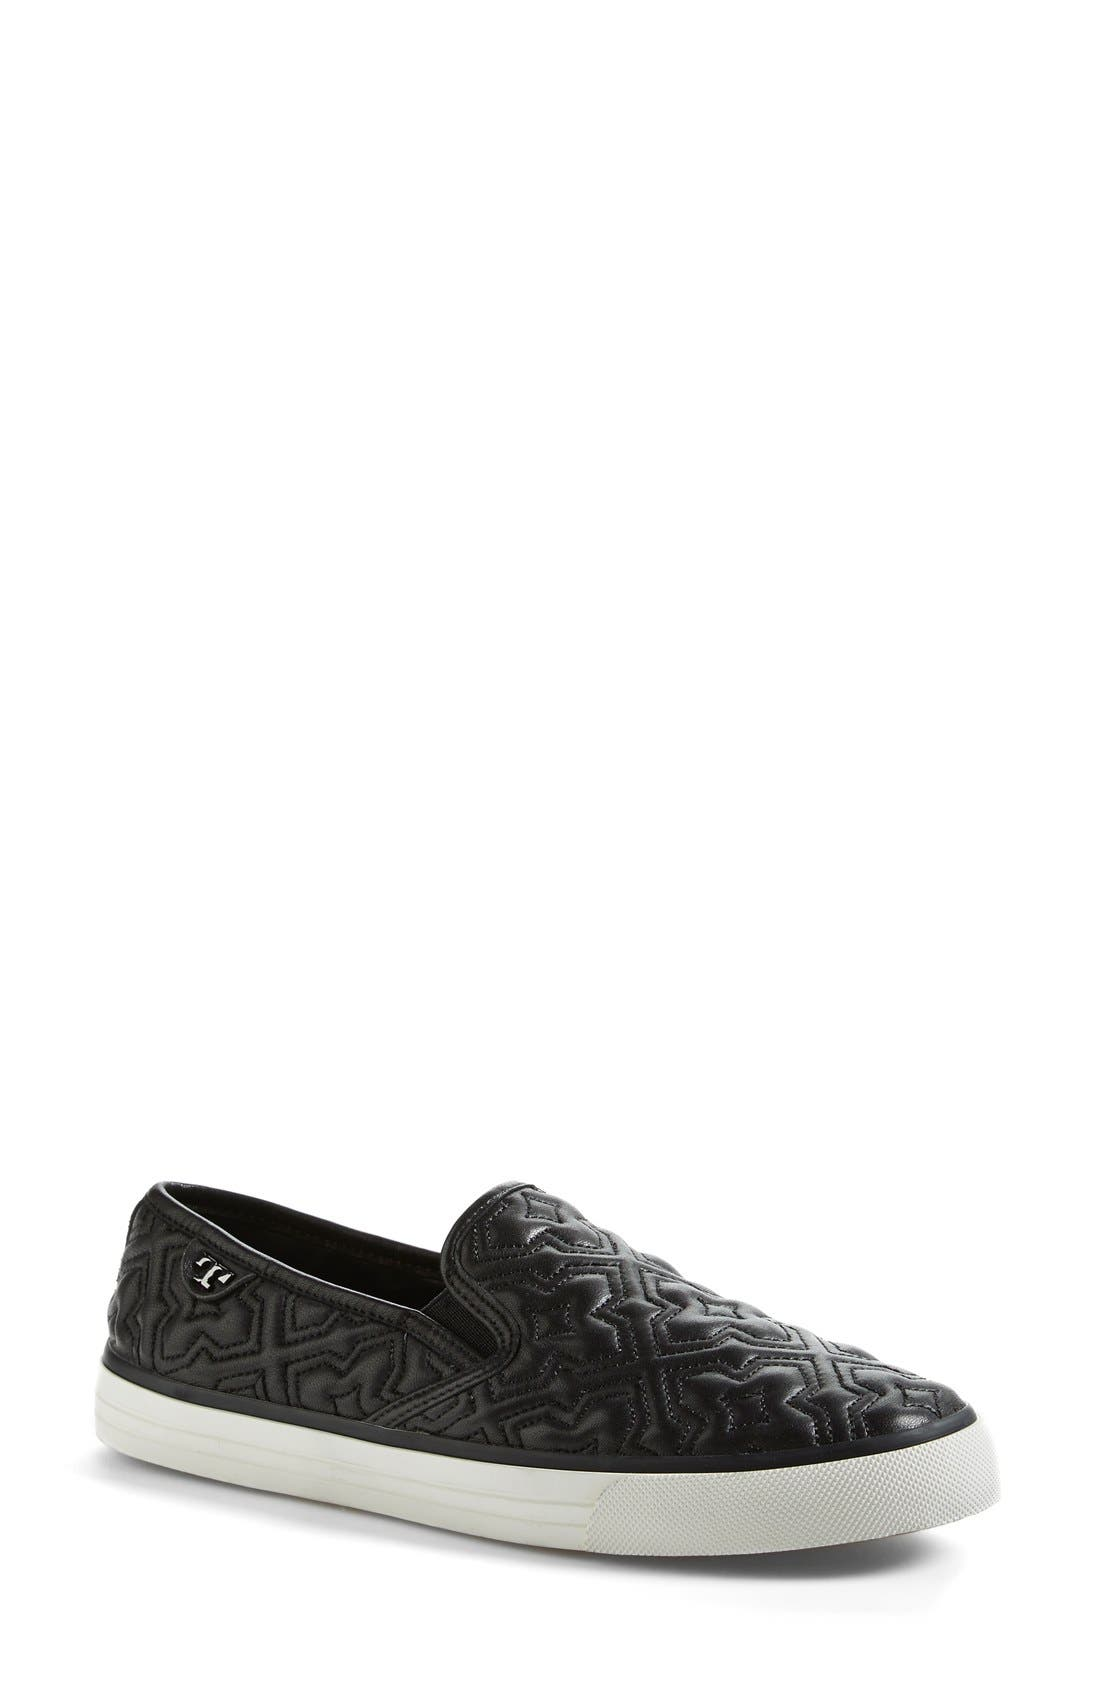 Main Image - Tory Burch 'Jesse 2' Quilted Sneaker (Women)